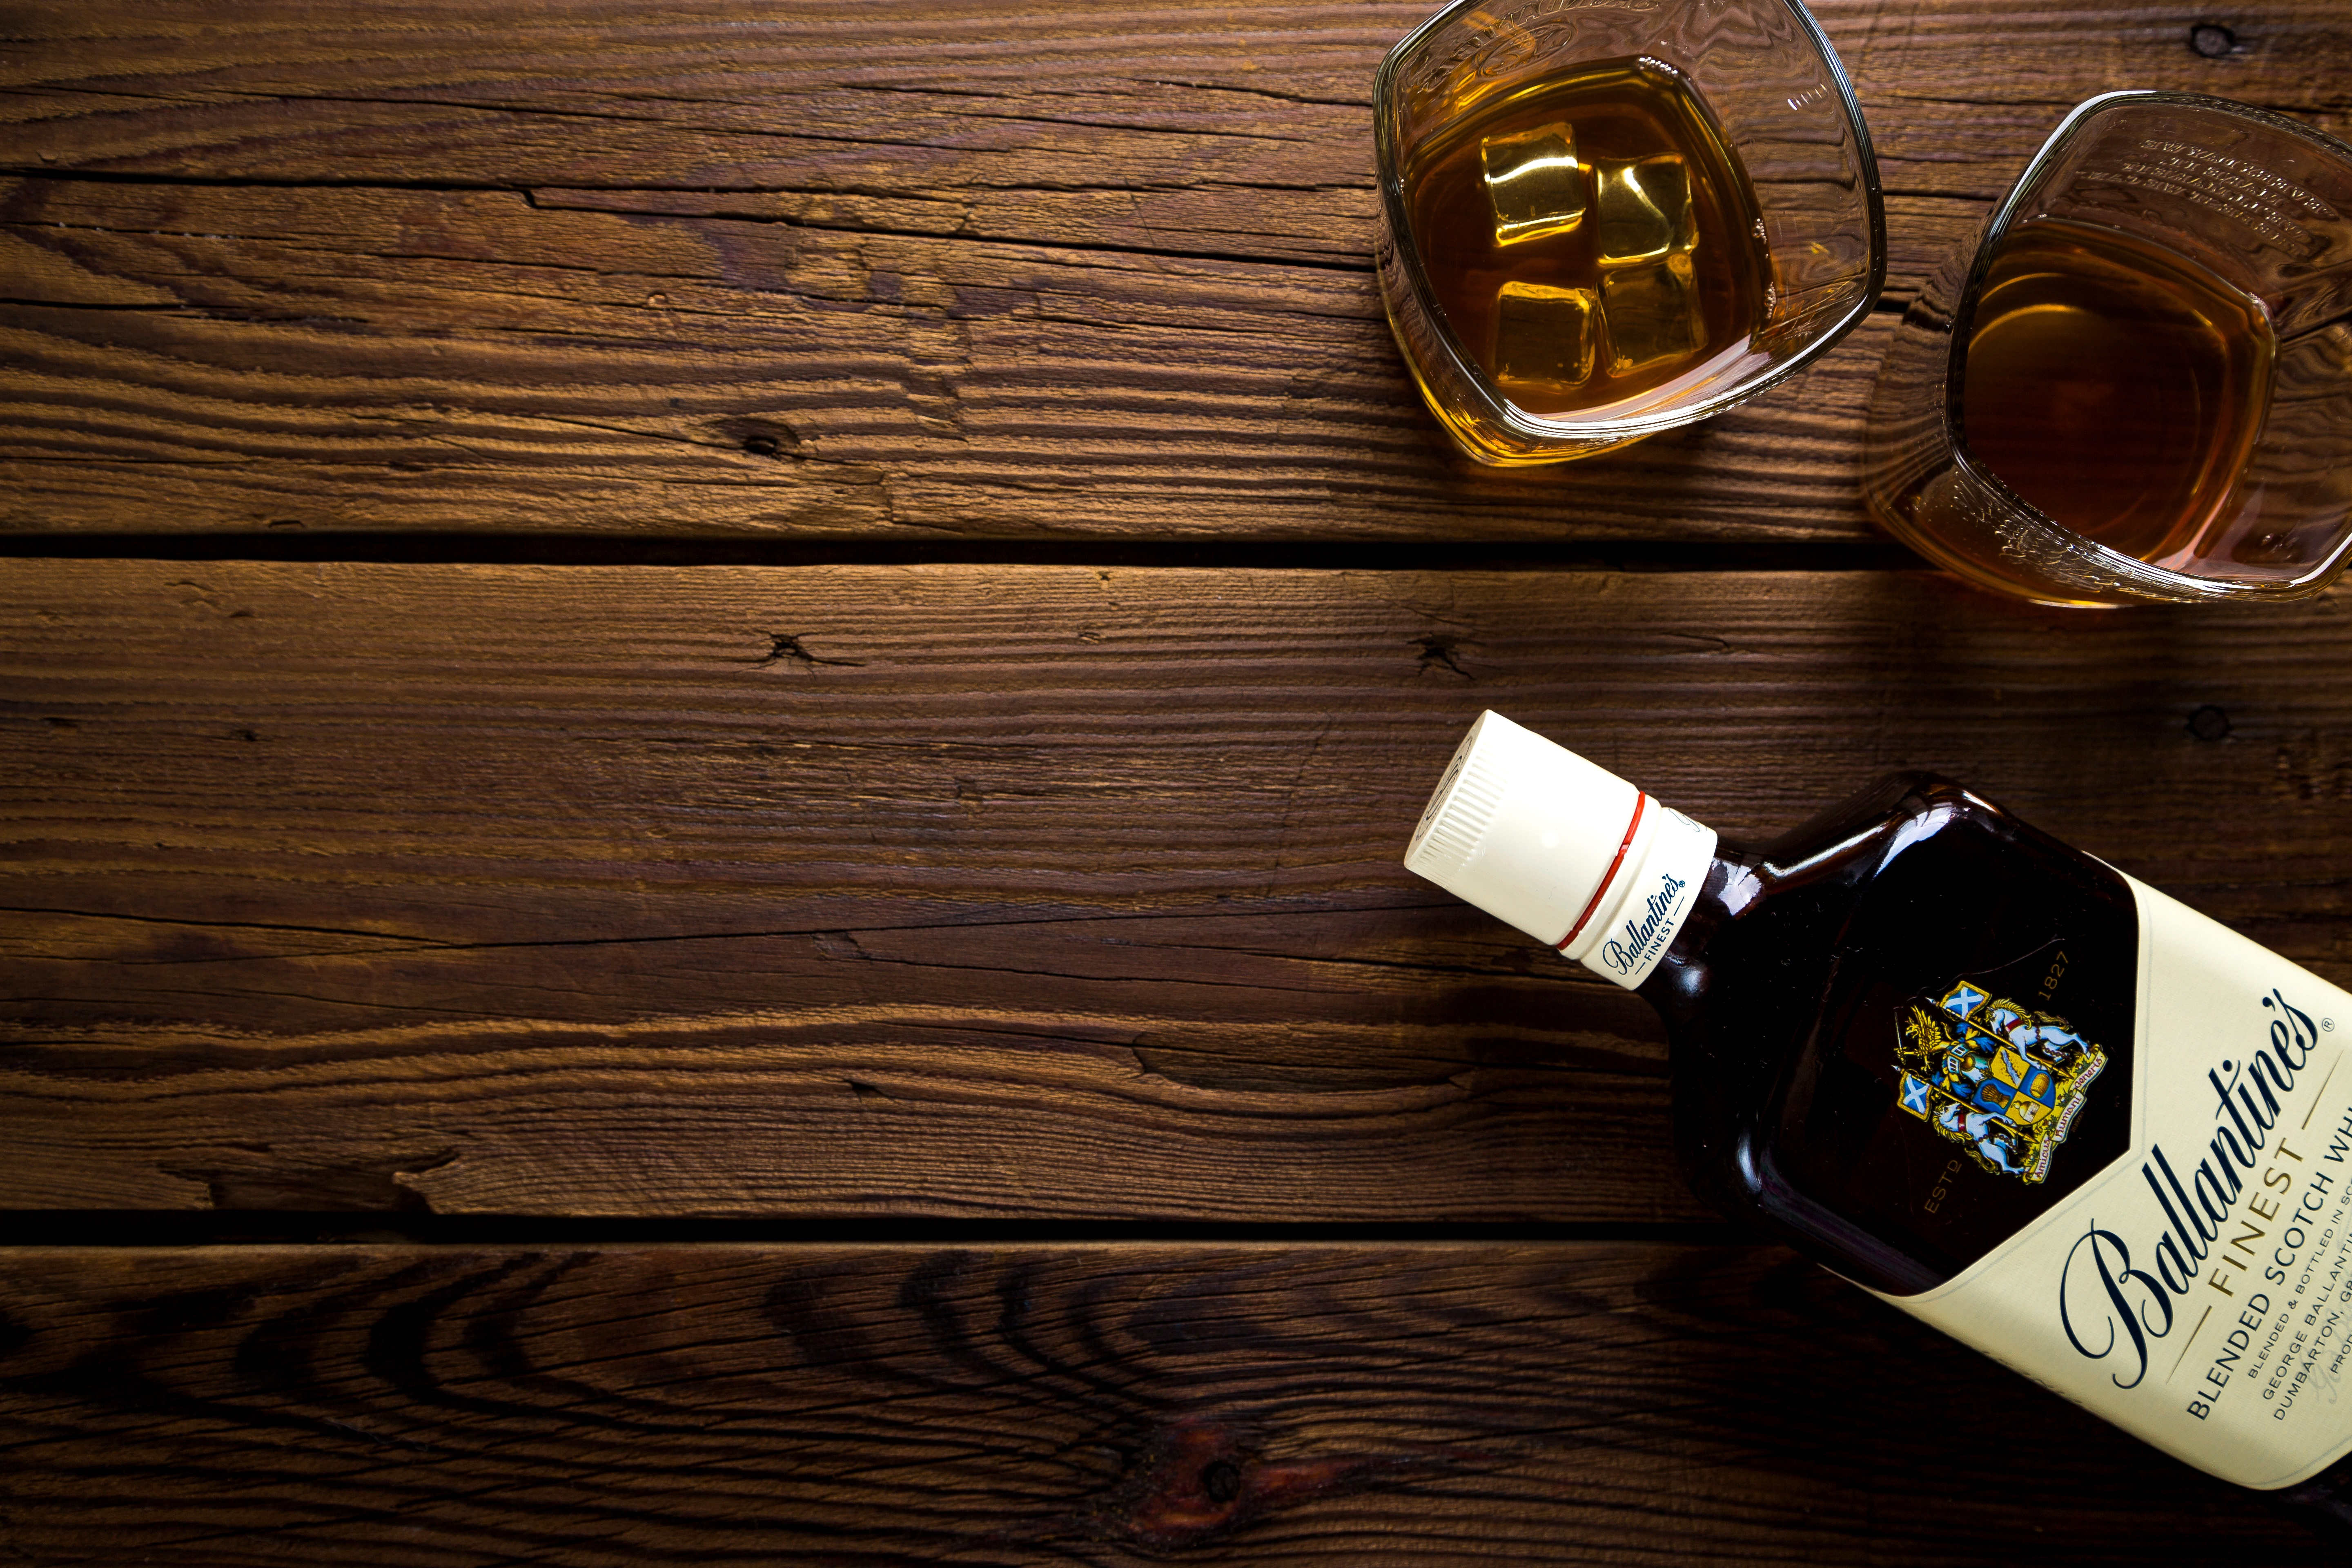 Free stock photo of food, wood, dark, alcohol